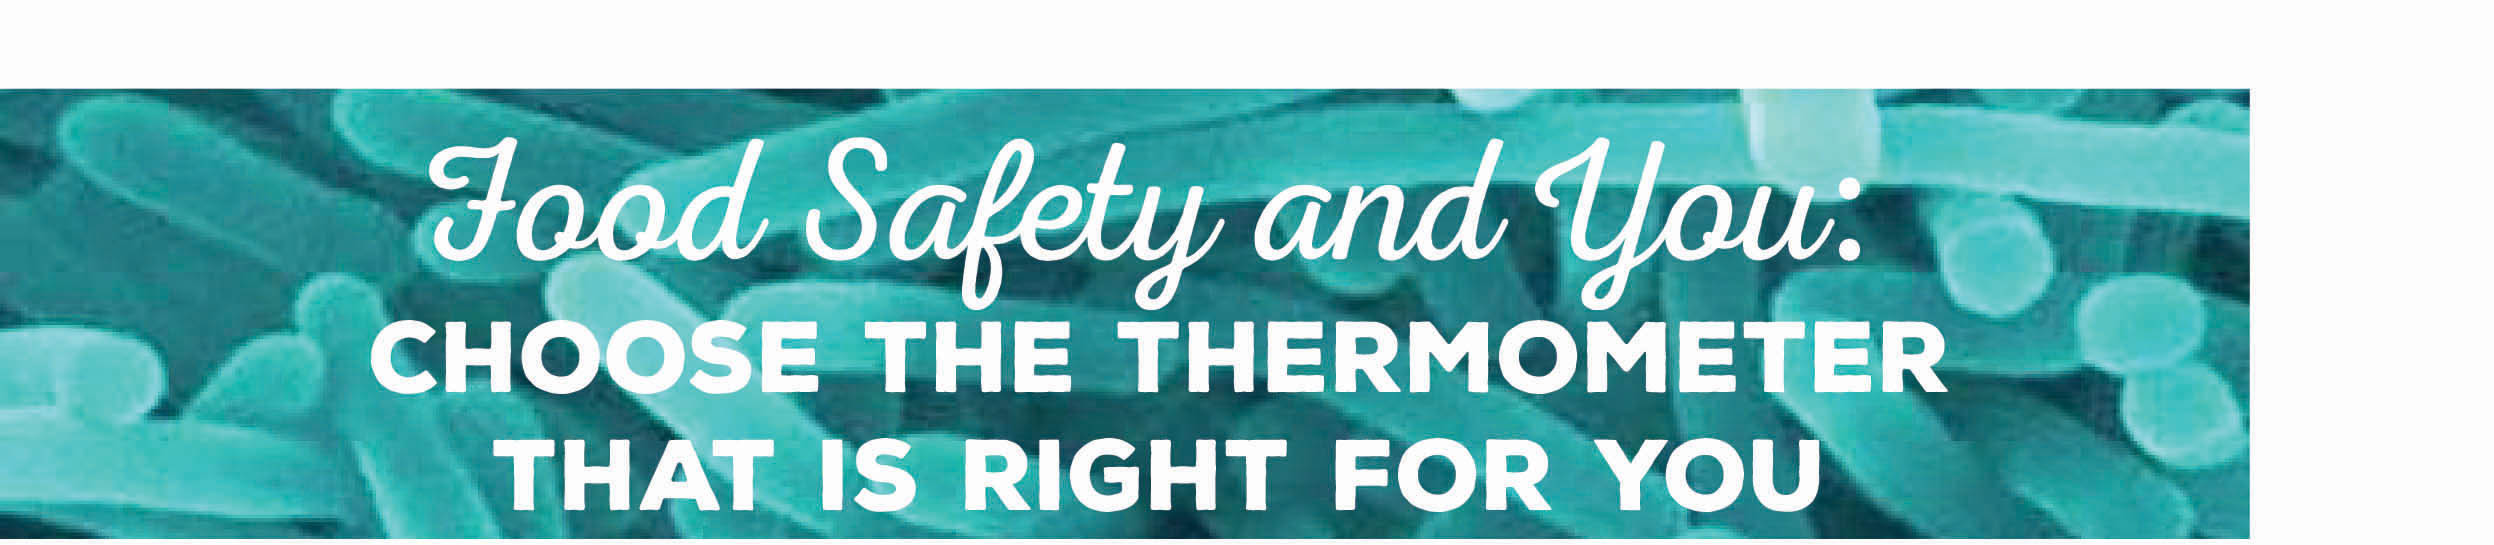 Food Safety and You: Choose the Thermometer That is Right For You